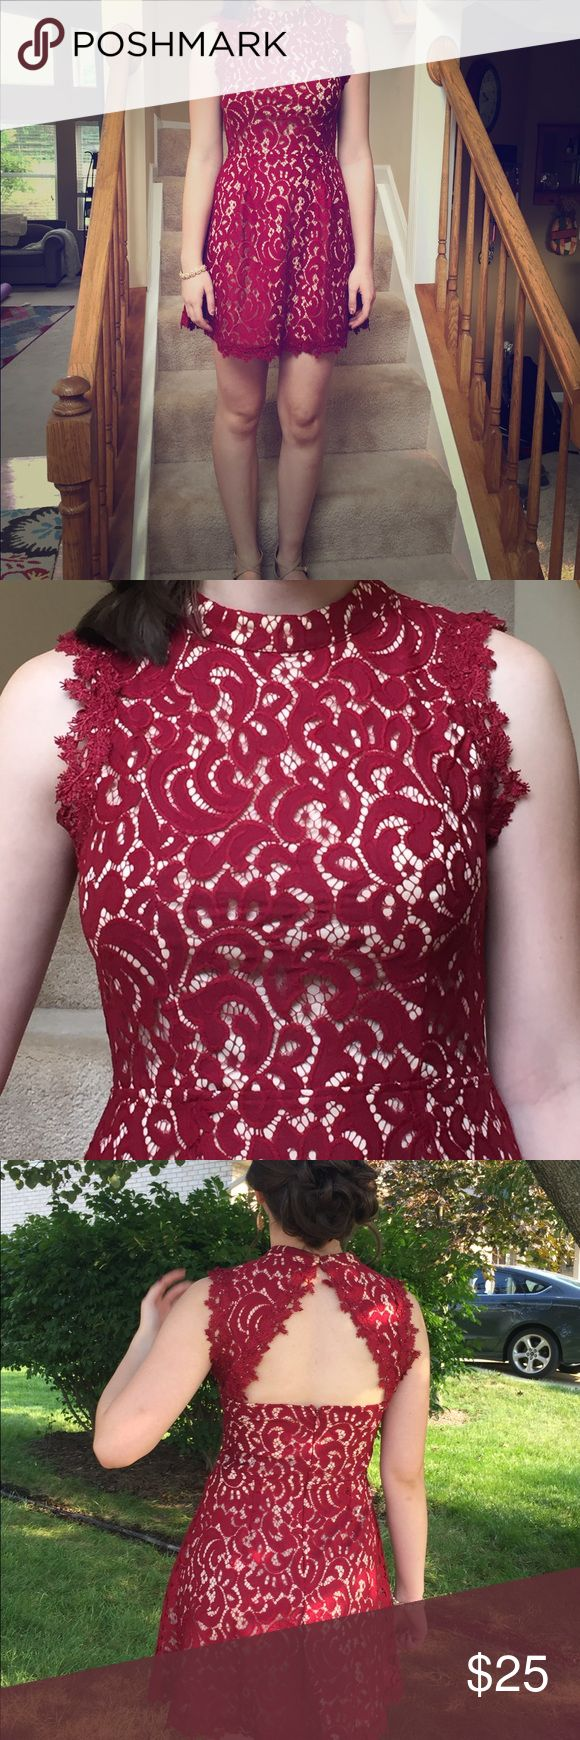 """Formal occasion dress, women's size M This is a gorgeous dress that I bought for my daughters homecoming dance. It was worn once. It has red lace overlay with nude colored fabric underneath. She is 5'9"""" and usually wears about a size 8 and it fit her beautifully. Bought at a boutique, no brand name on the label. Dresses Midi"""